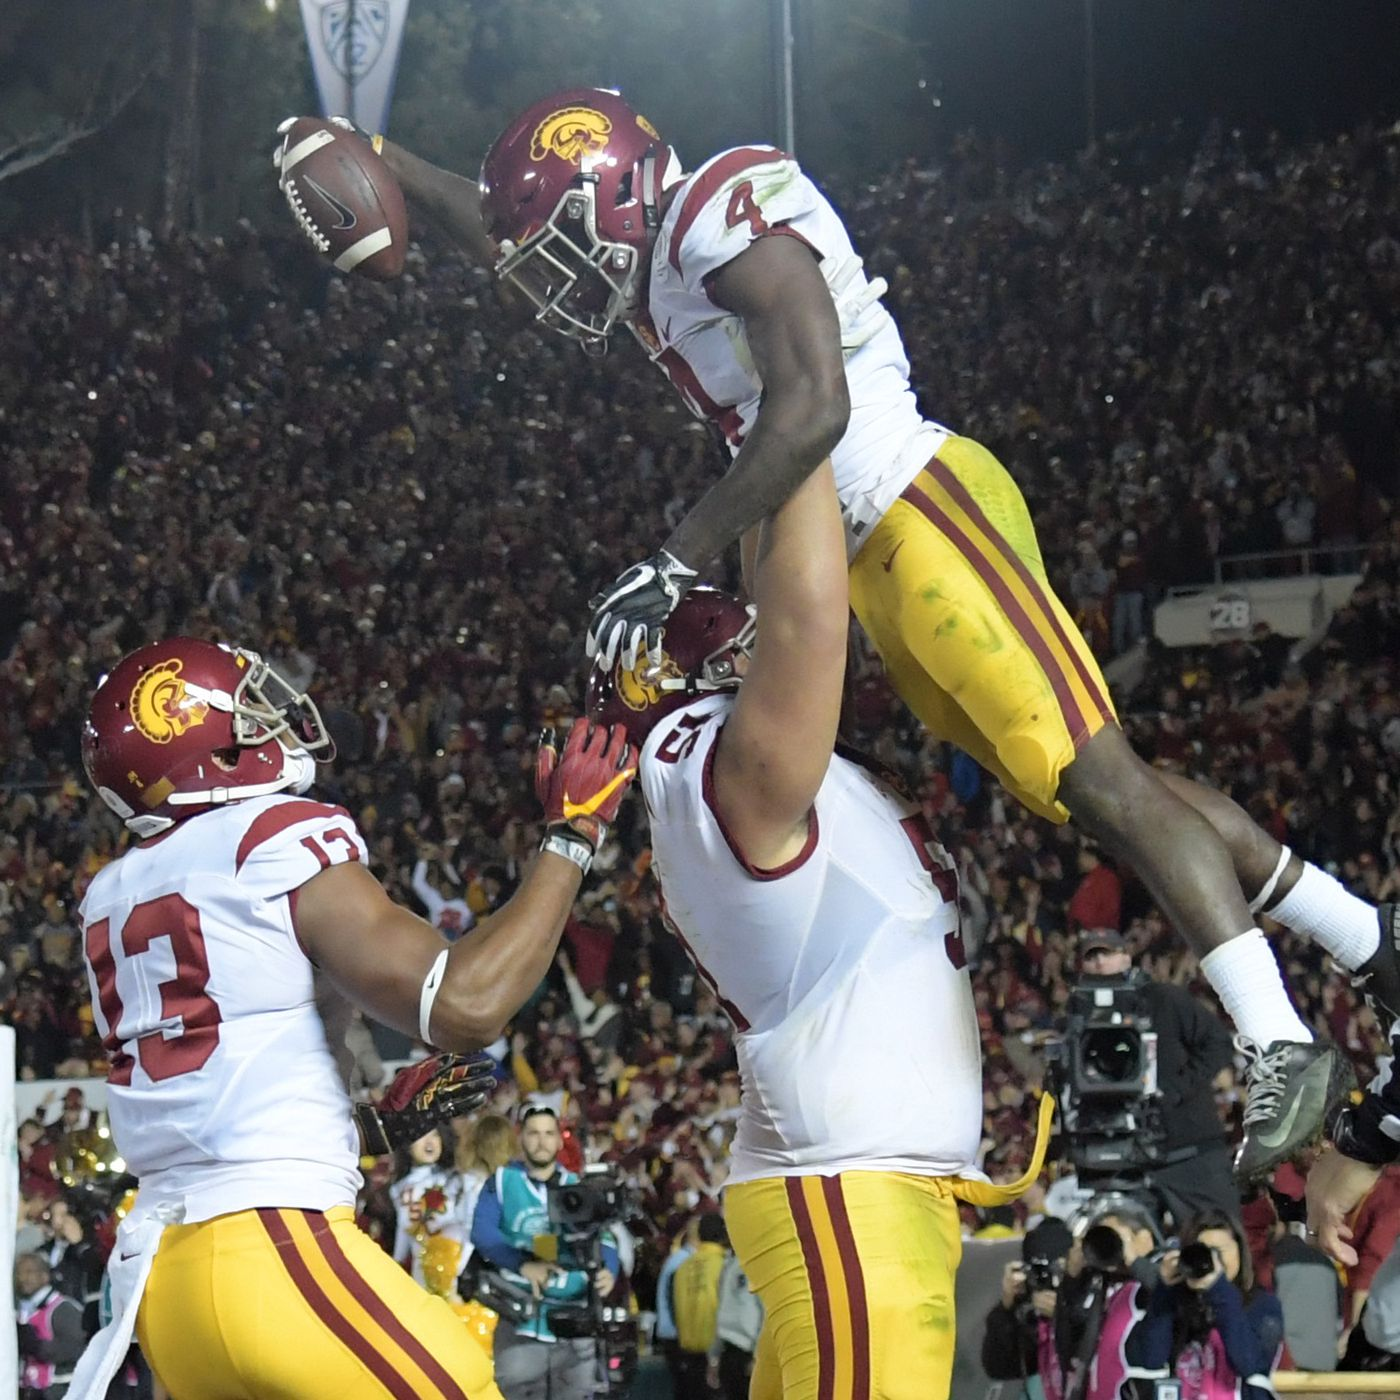 Usc Rb Ronald Jones Punches The Ball Into The End Zone Penn State Leads 49 42 Conquest Chronicles